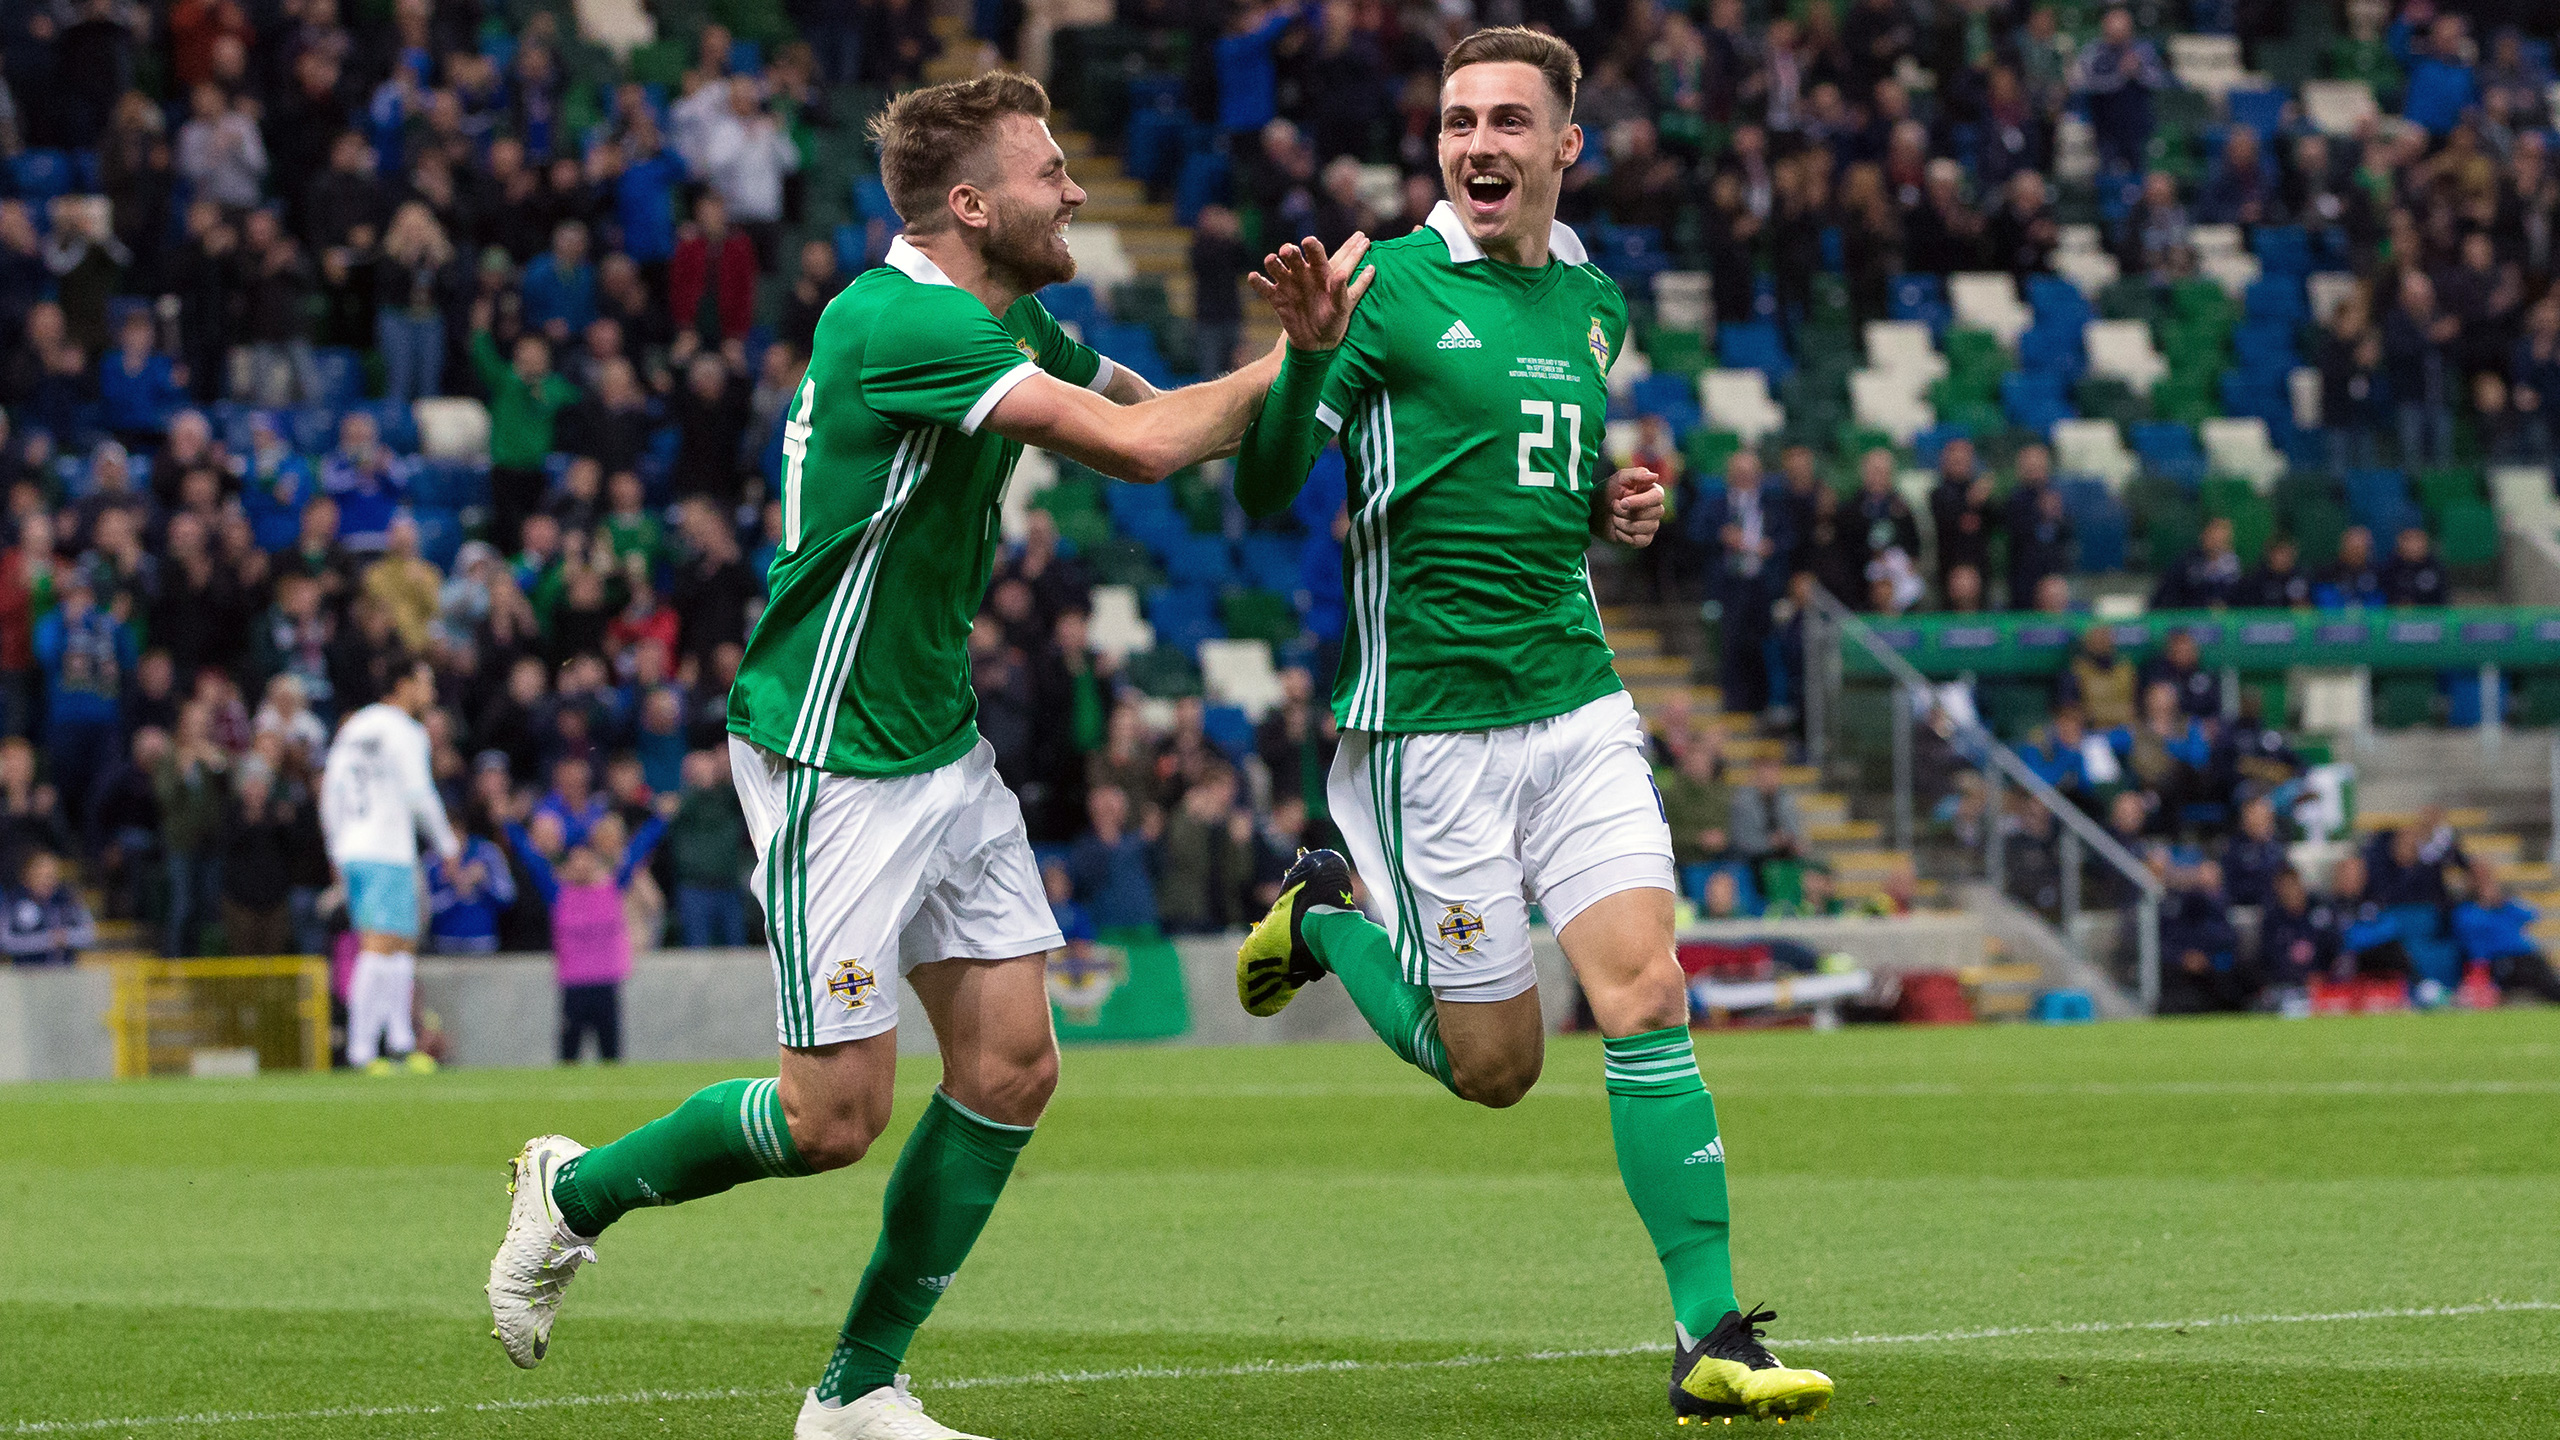 Northern Ireland vs. Estonia (UEFA European Qualifiers)